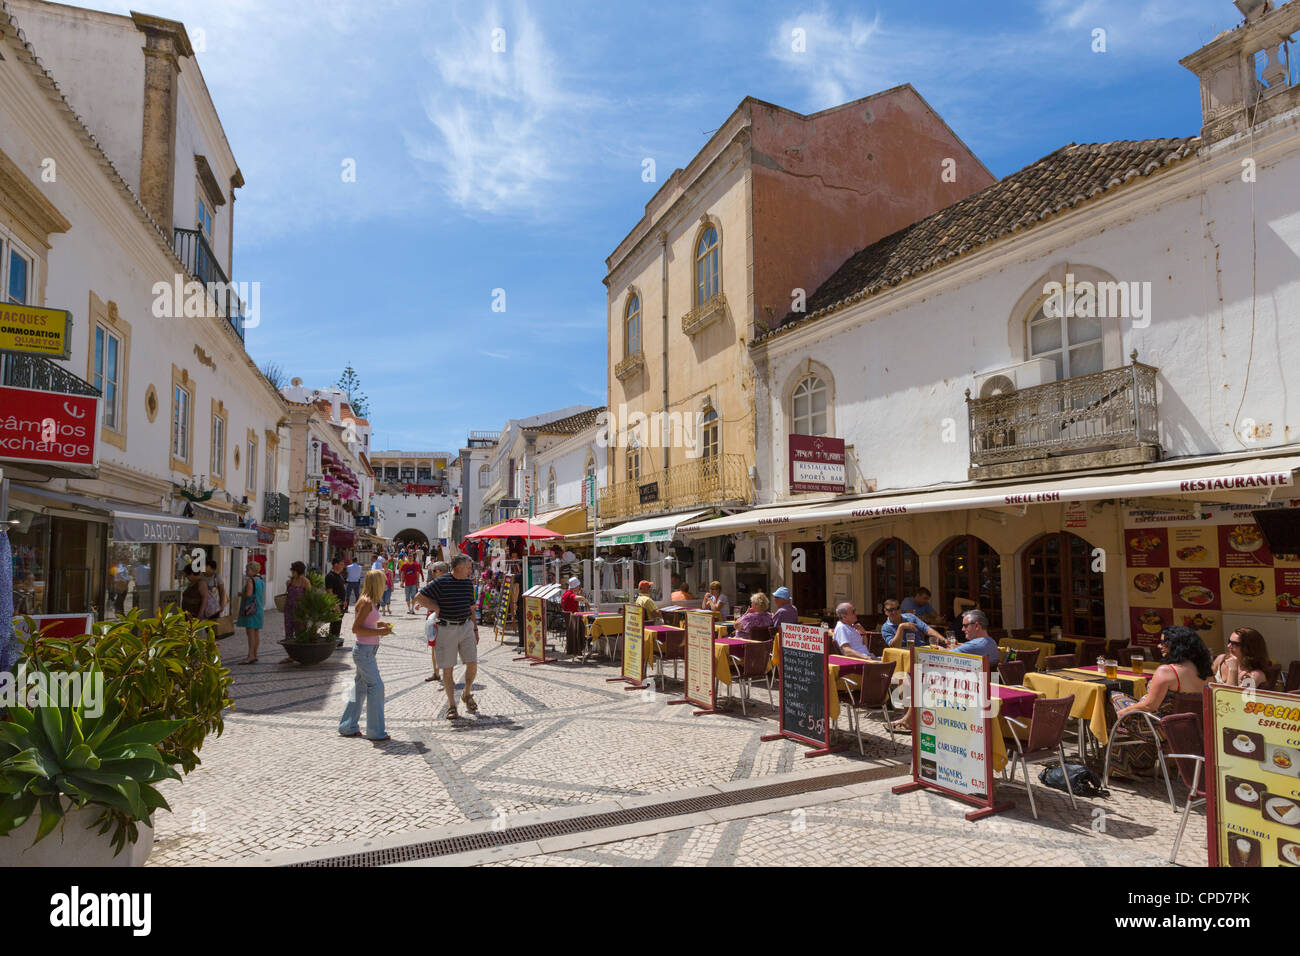 Shops and restaurants on Rua 5 de Outubro in the old town centre, Albufeira, Algarve, Portugal - Stock Image